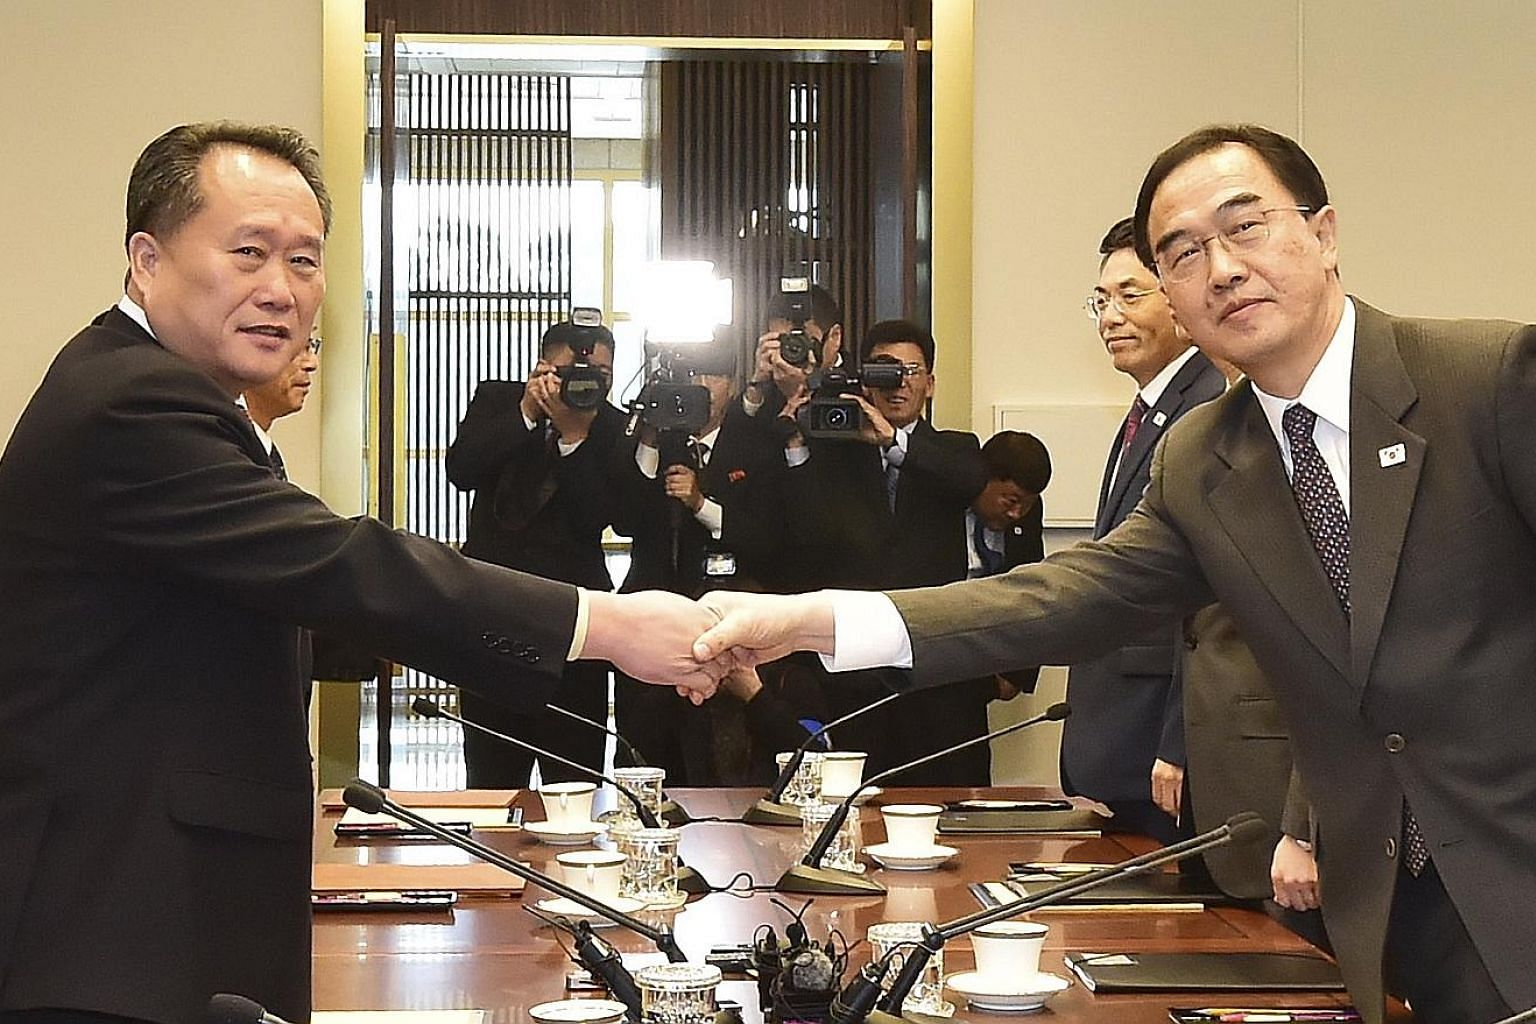 South Korean Unification Minister Cho Myoung-gyon (wearing glasses) and North Korea's Committee for Peaceful Reunification chairman Ri Son Gwon shaking hands prior to their talks in Panmunjom yesterday.